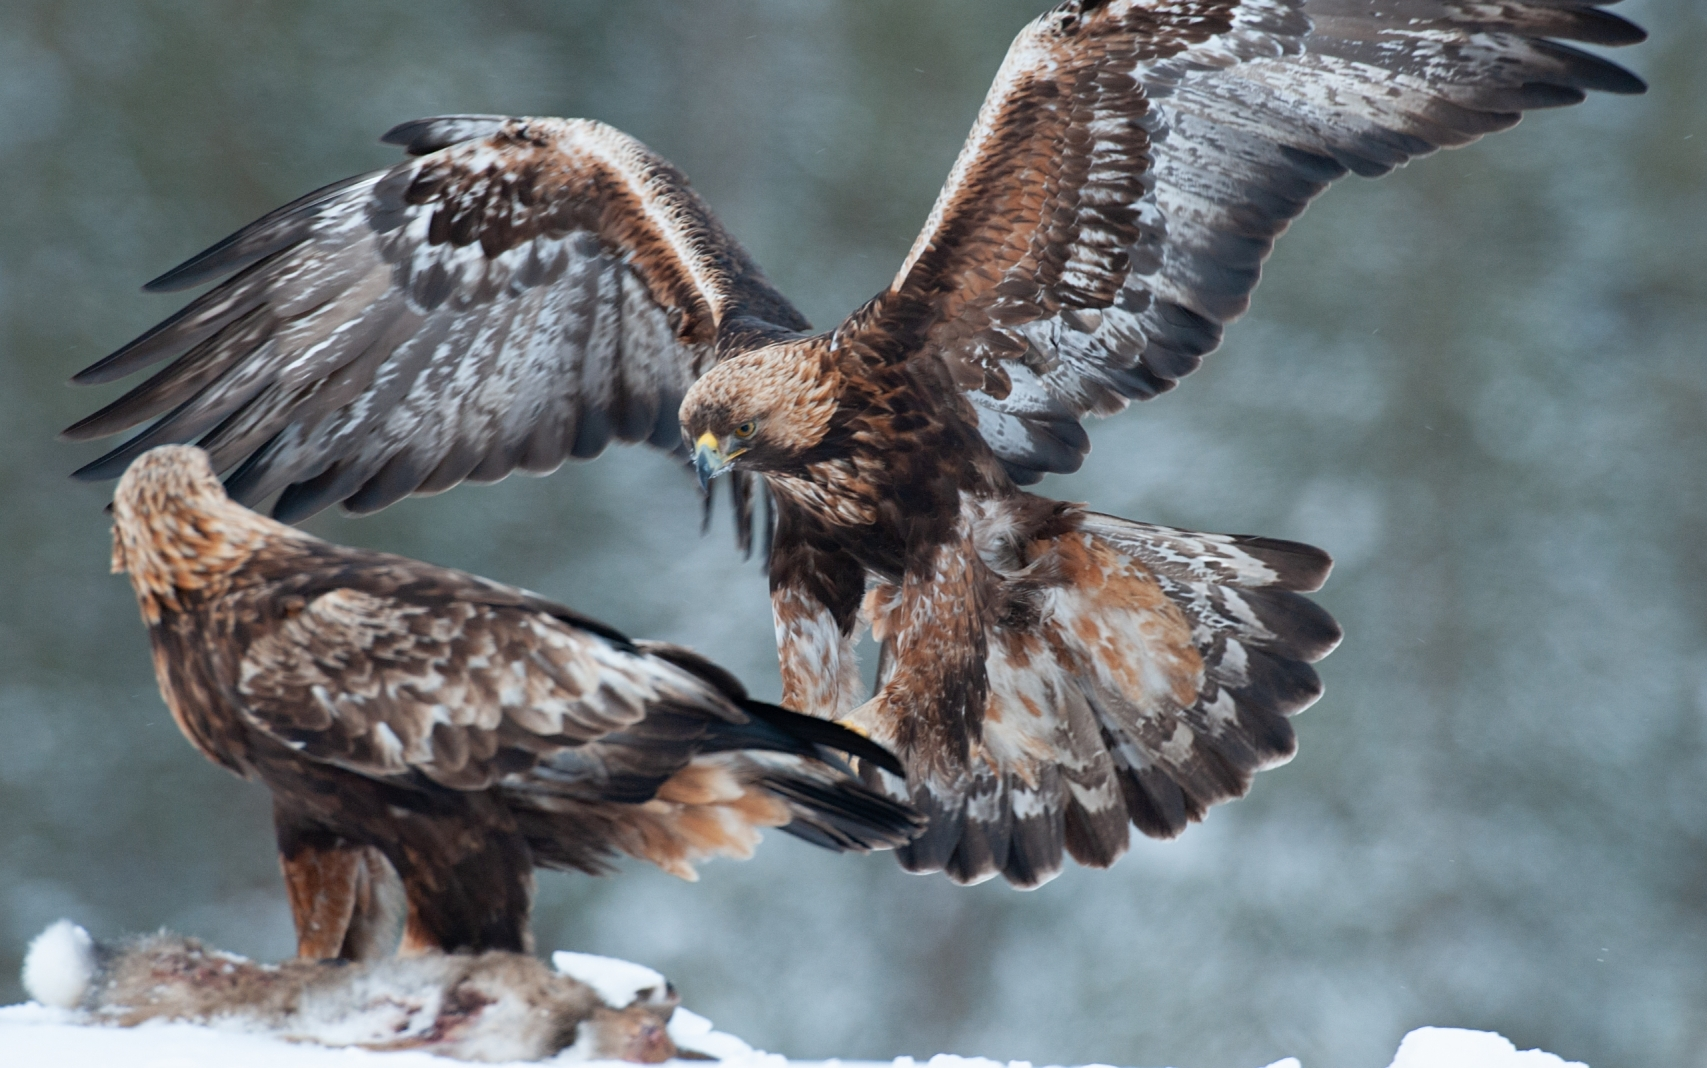 Wildlife Photography Trips: Eagles